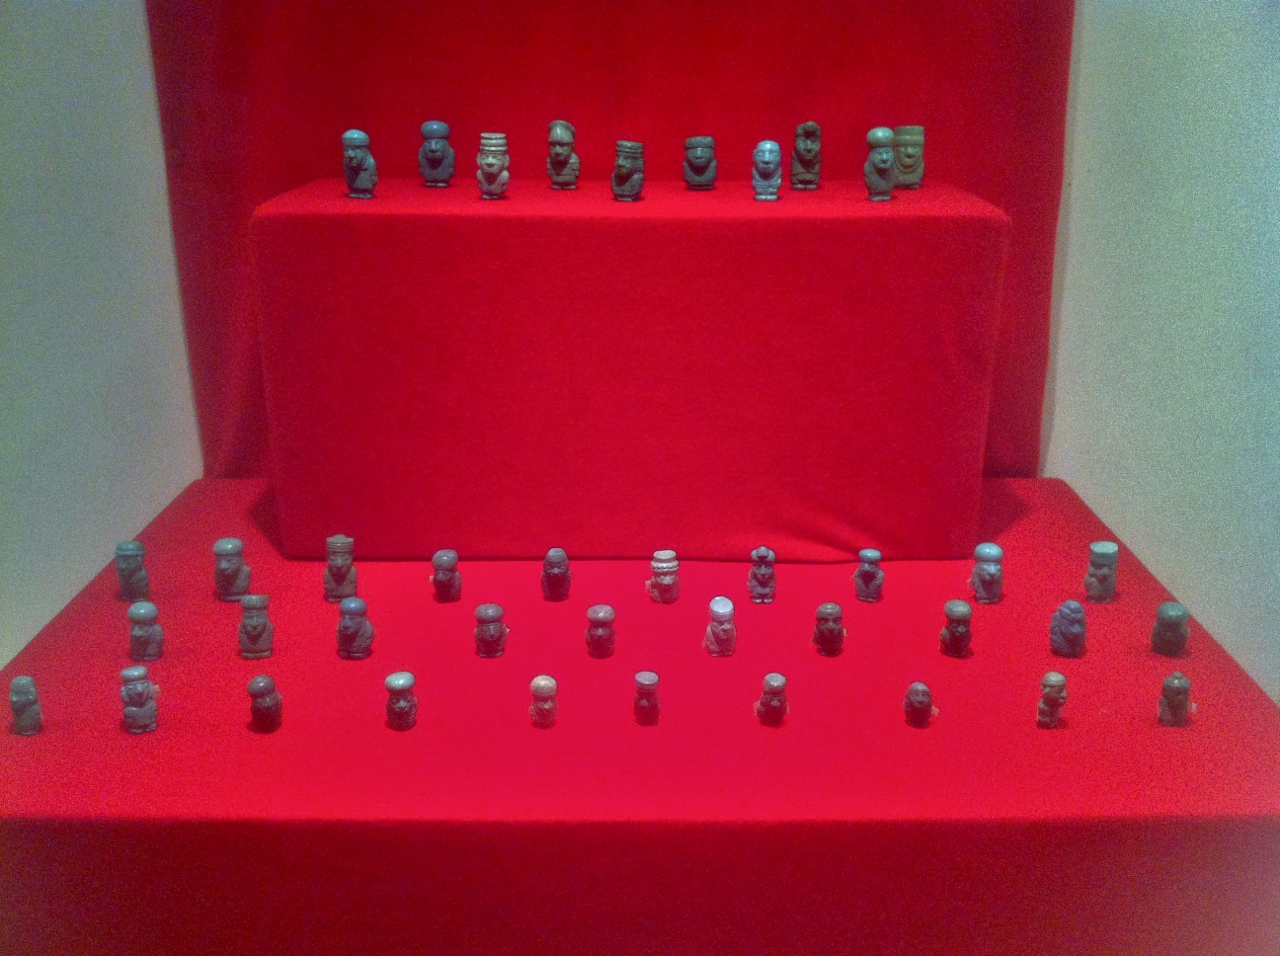 The museum had hundreds of these turquoise figurines. Each one had a distinct face, armor, and weapons, even though each figurine stood no taller than a quarter.